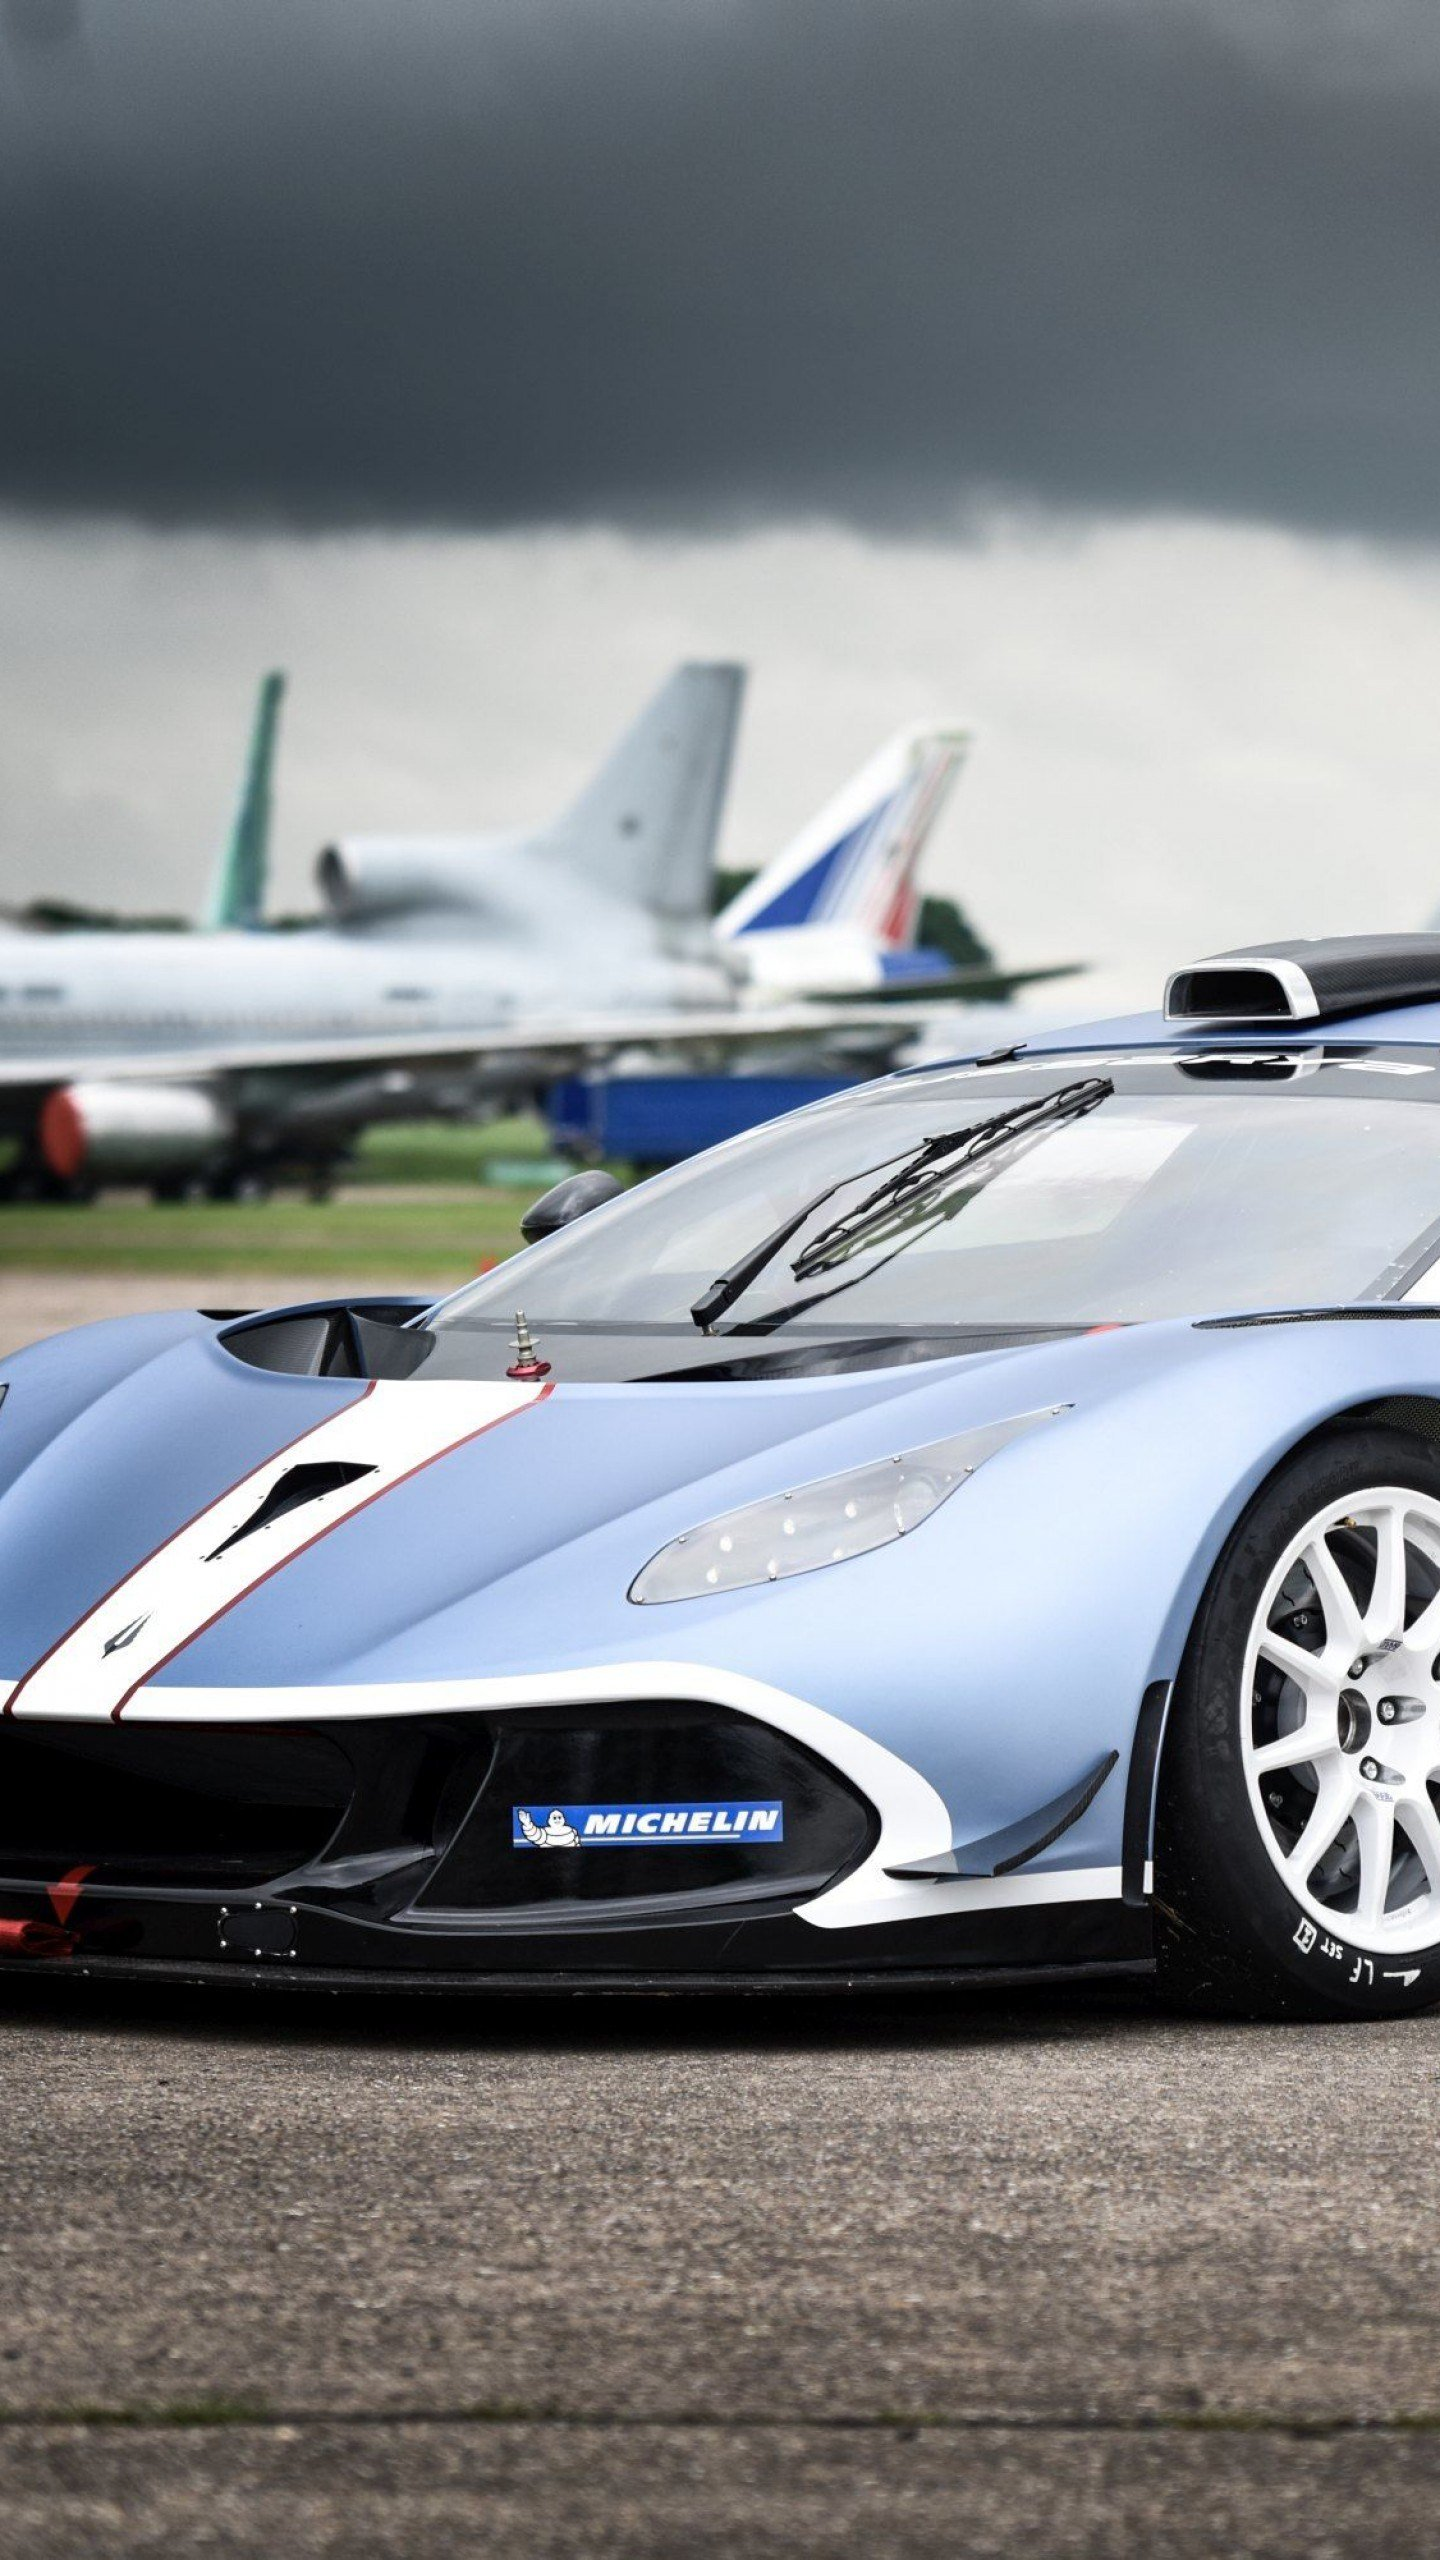 Latest Wallpaper Arrinera Hussarya Gt Supercar Speed Cars Free Download